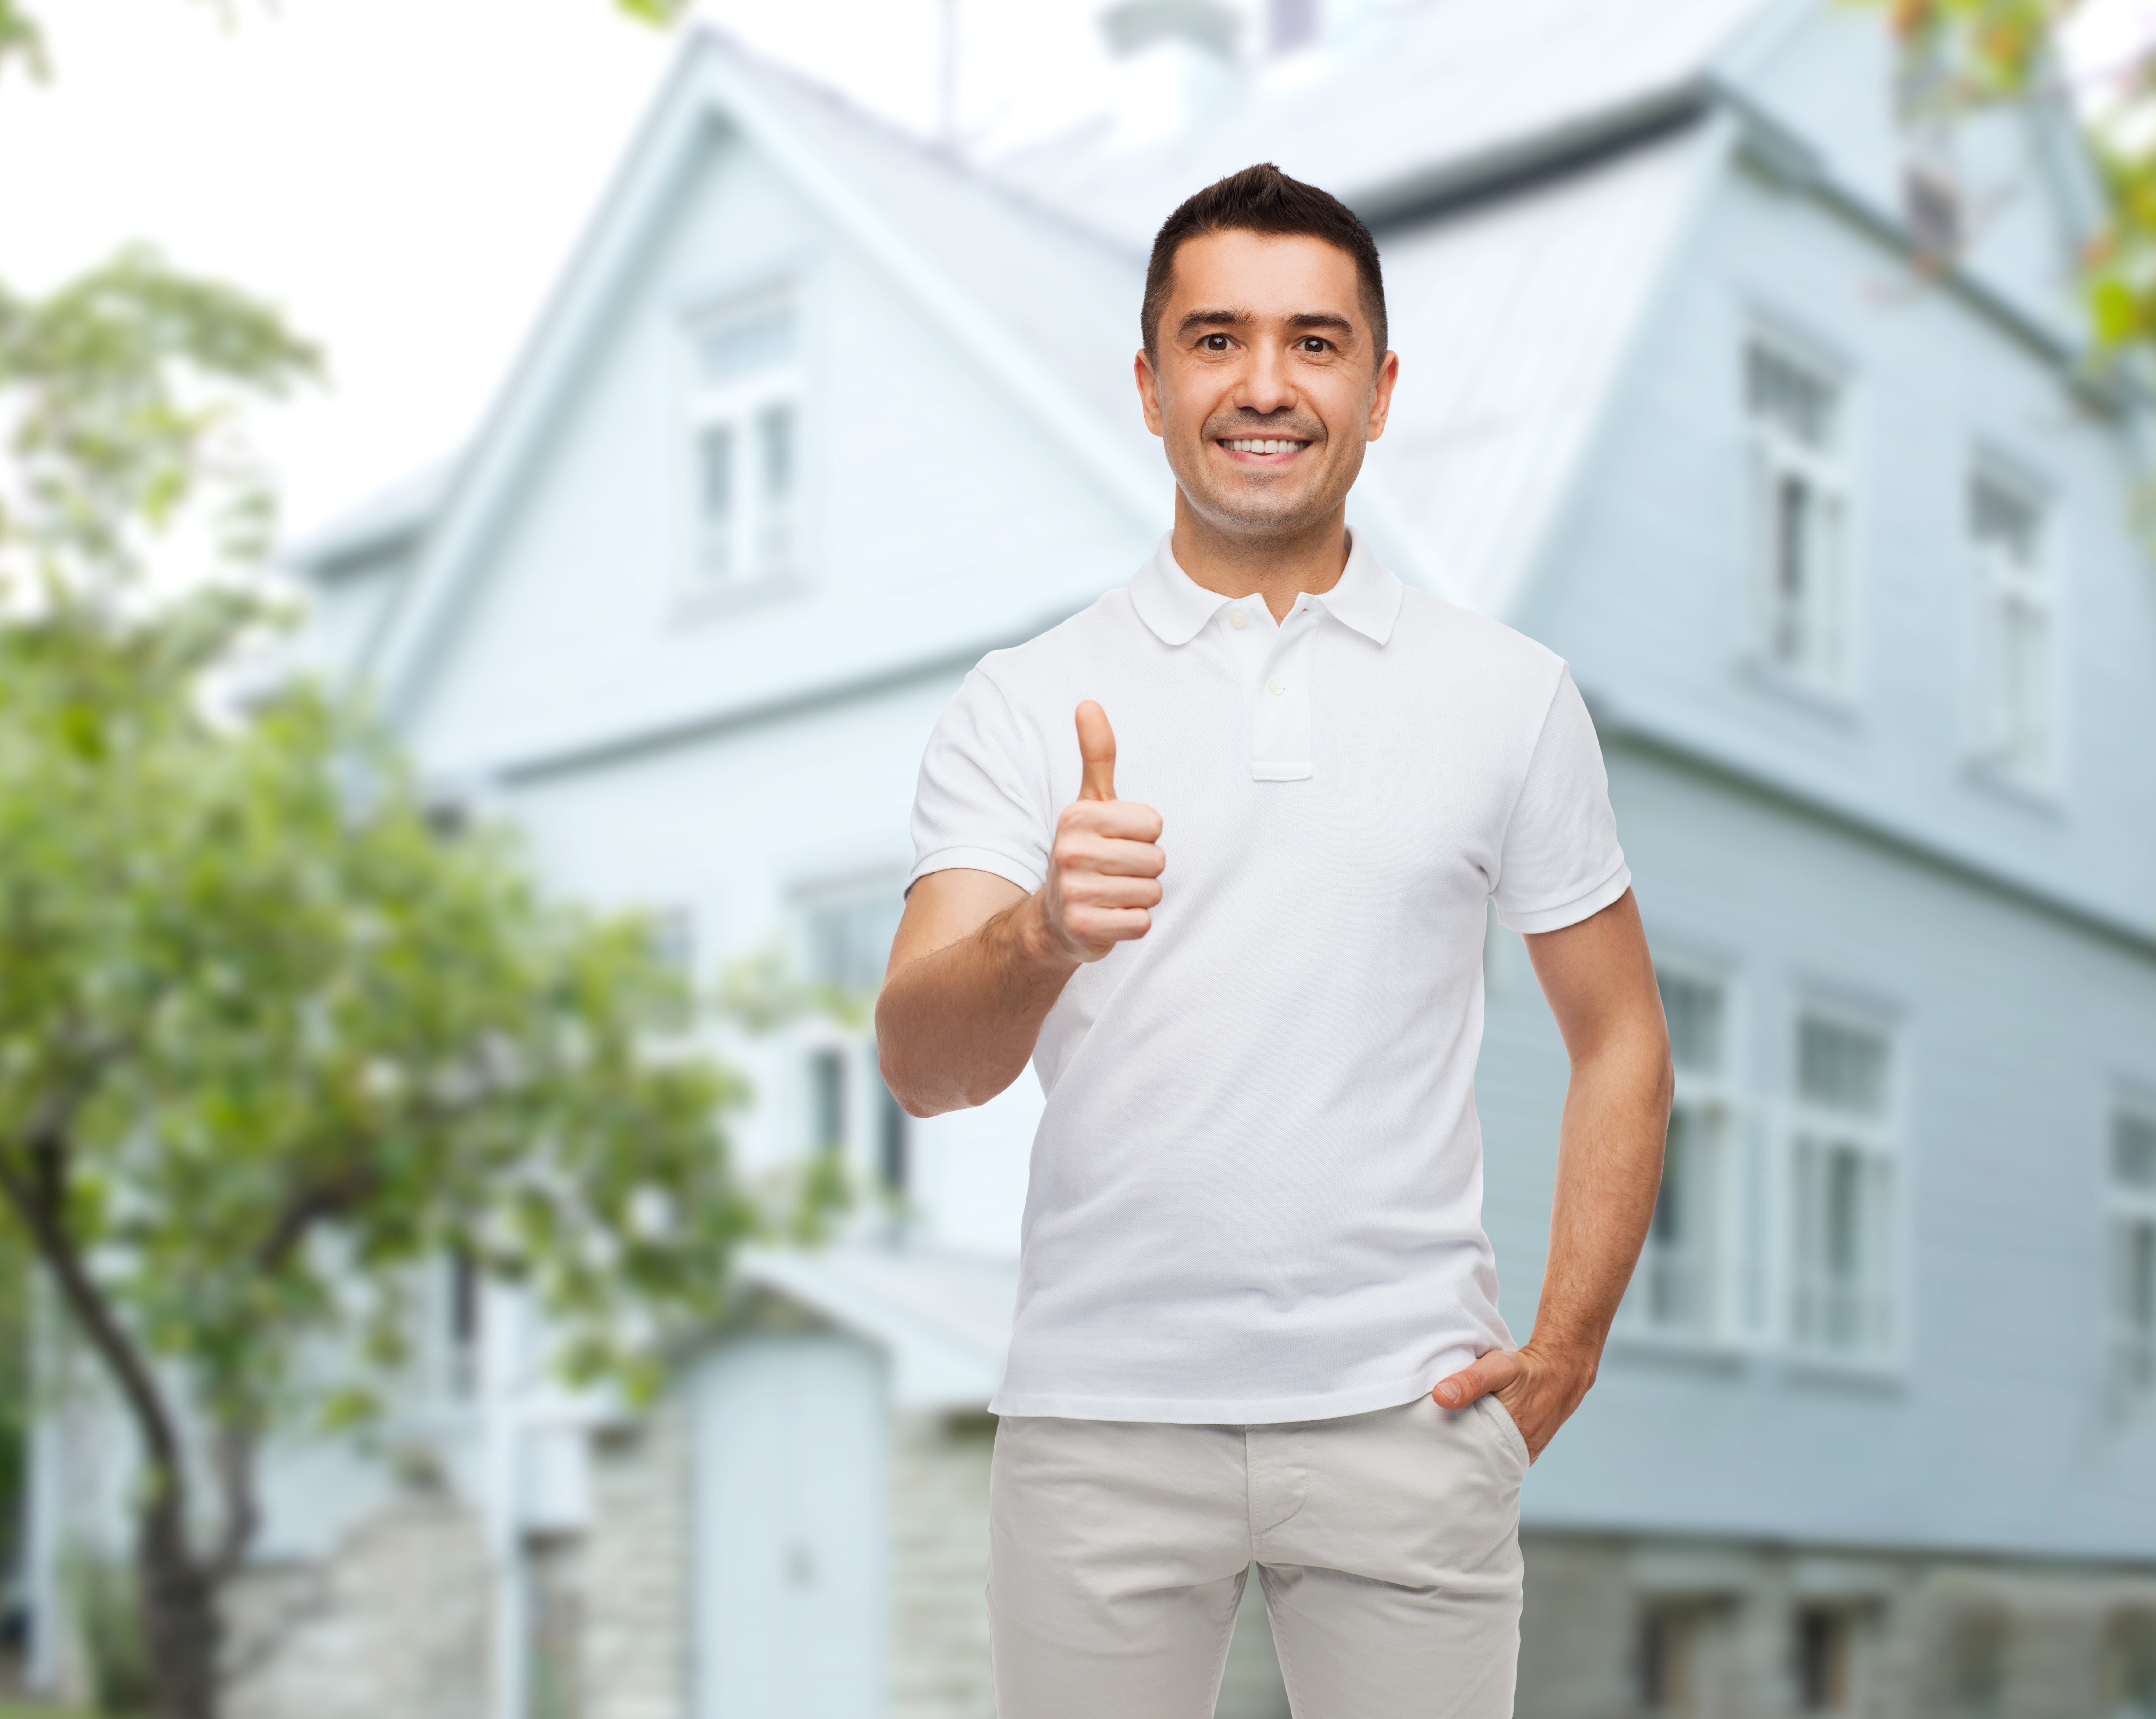 man showing thumbs up over house background